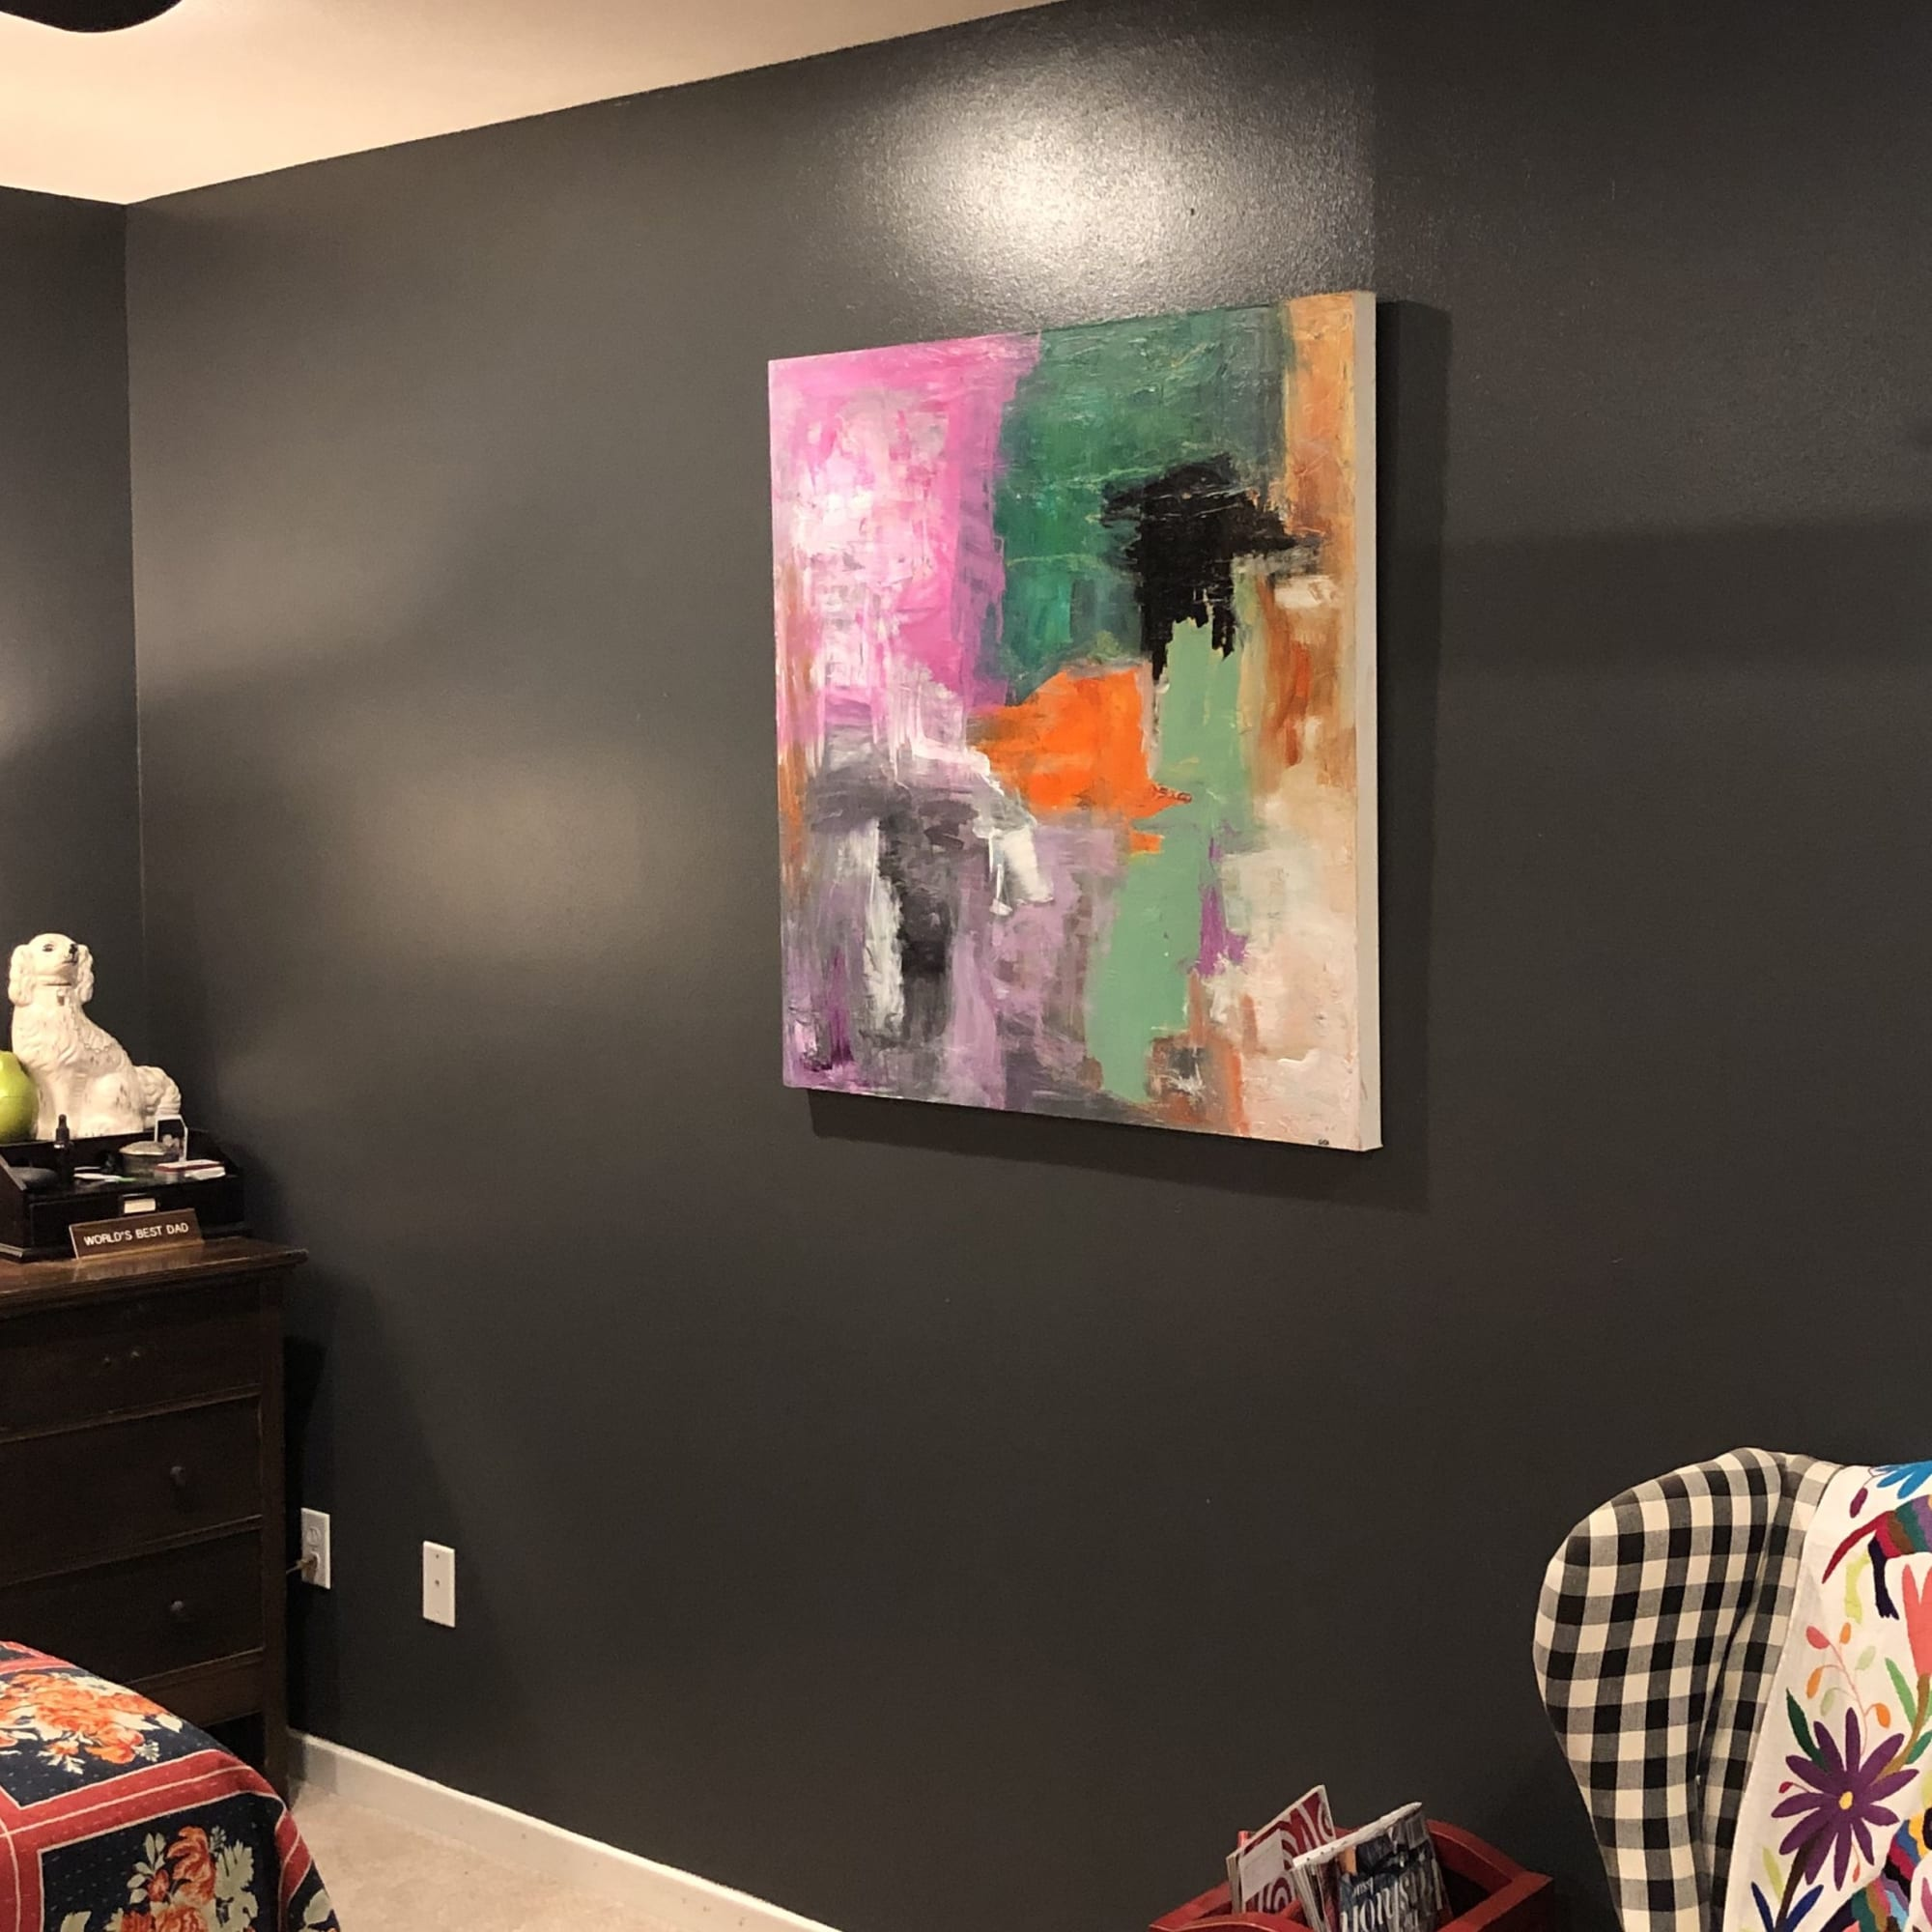 Multicolor abstract painting on black wall